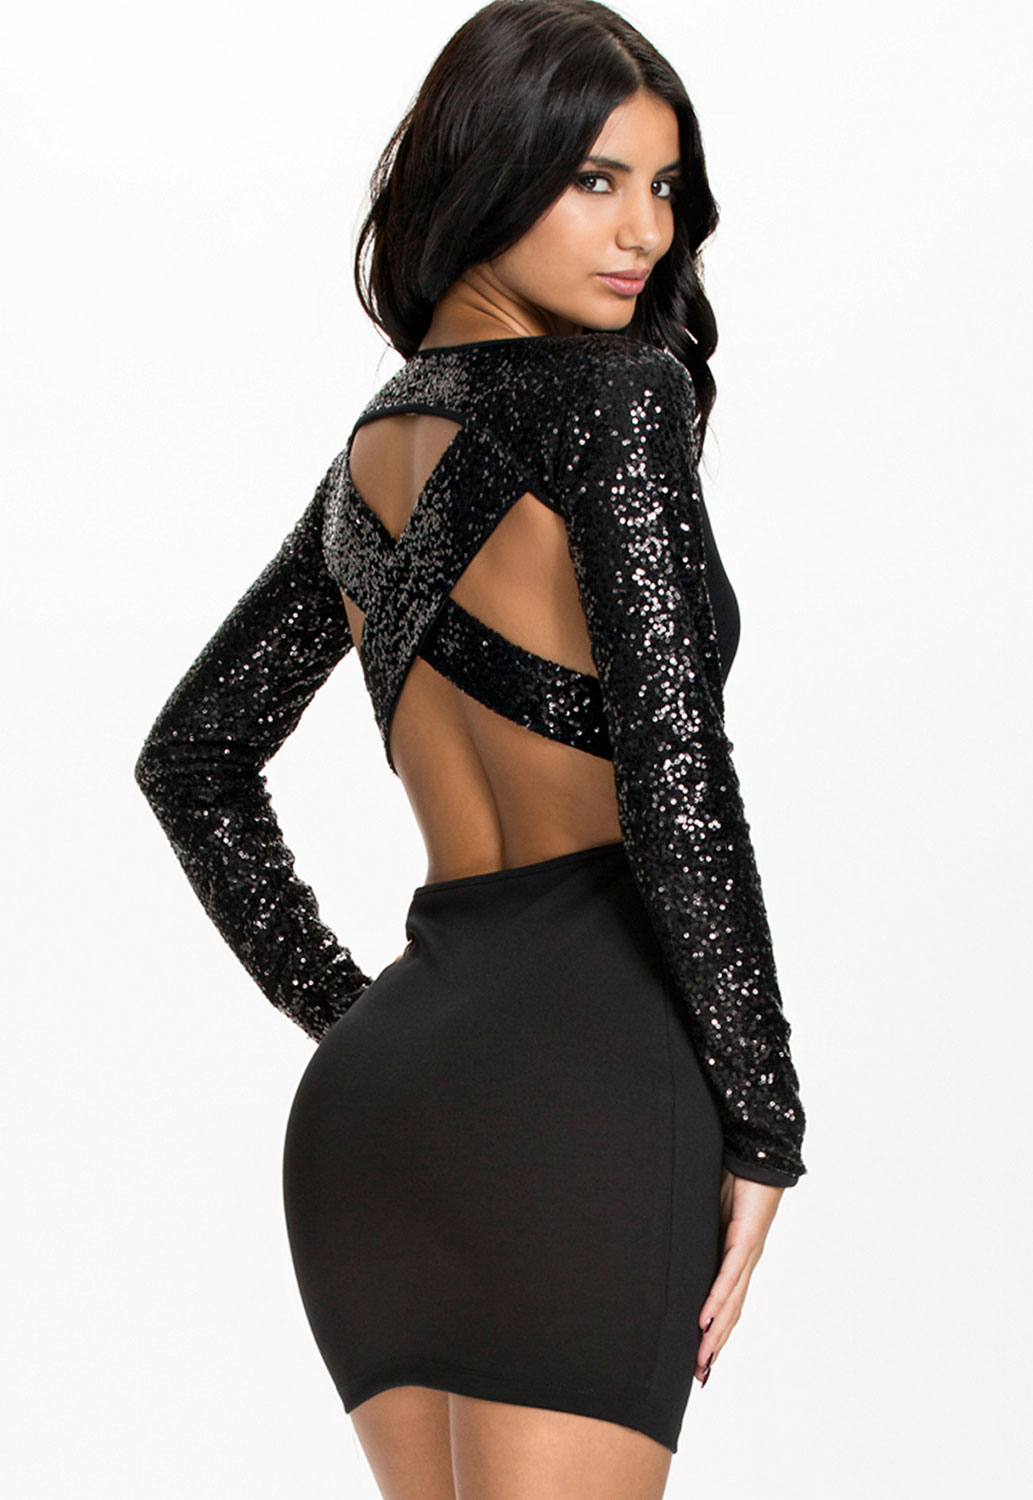 Which Club Dress to Get? Check Out The List